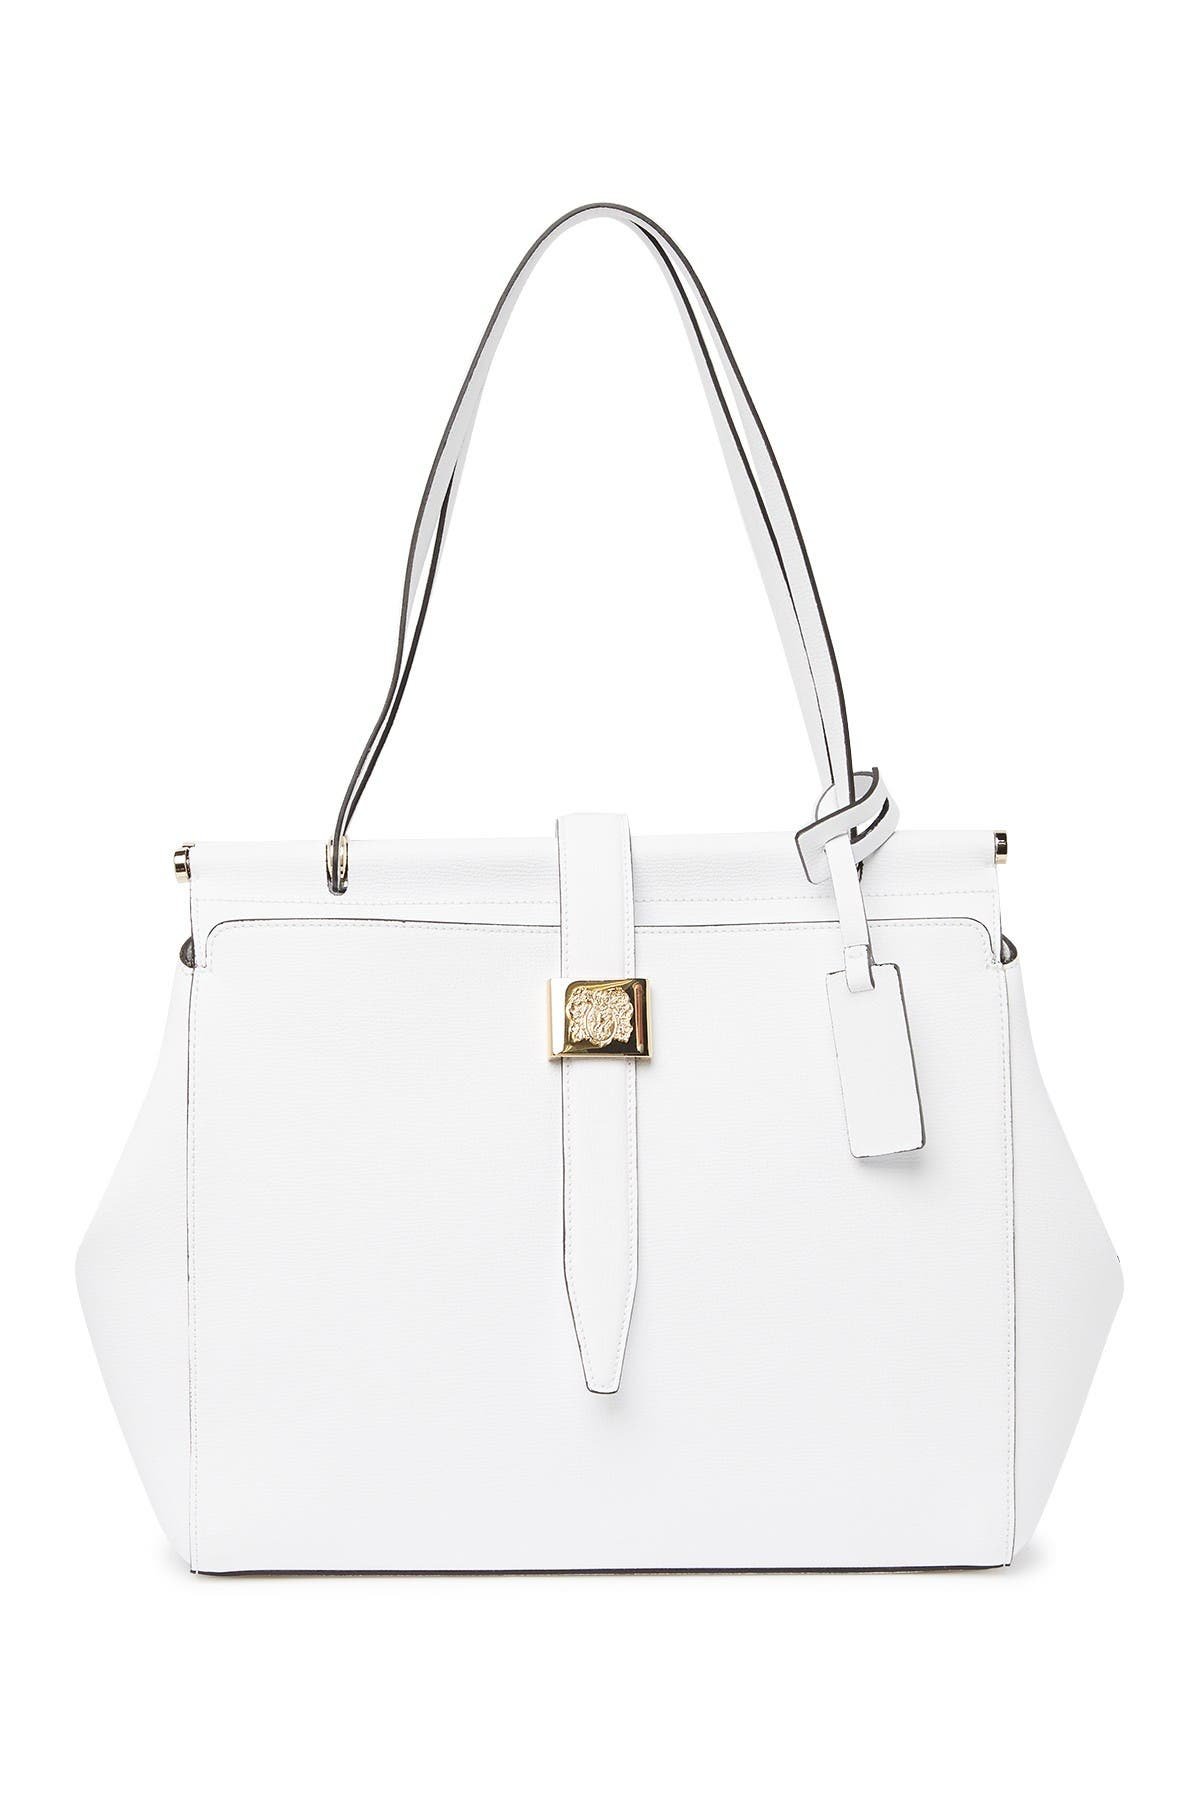 Image of Bruno Magli Double Dowel Leather Tote Bag